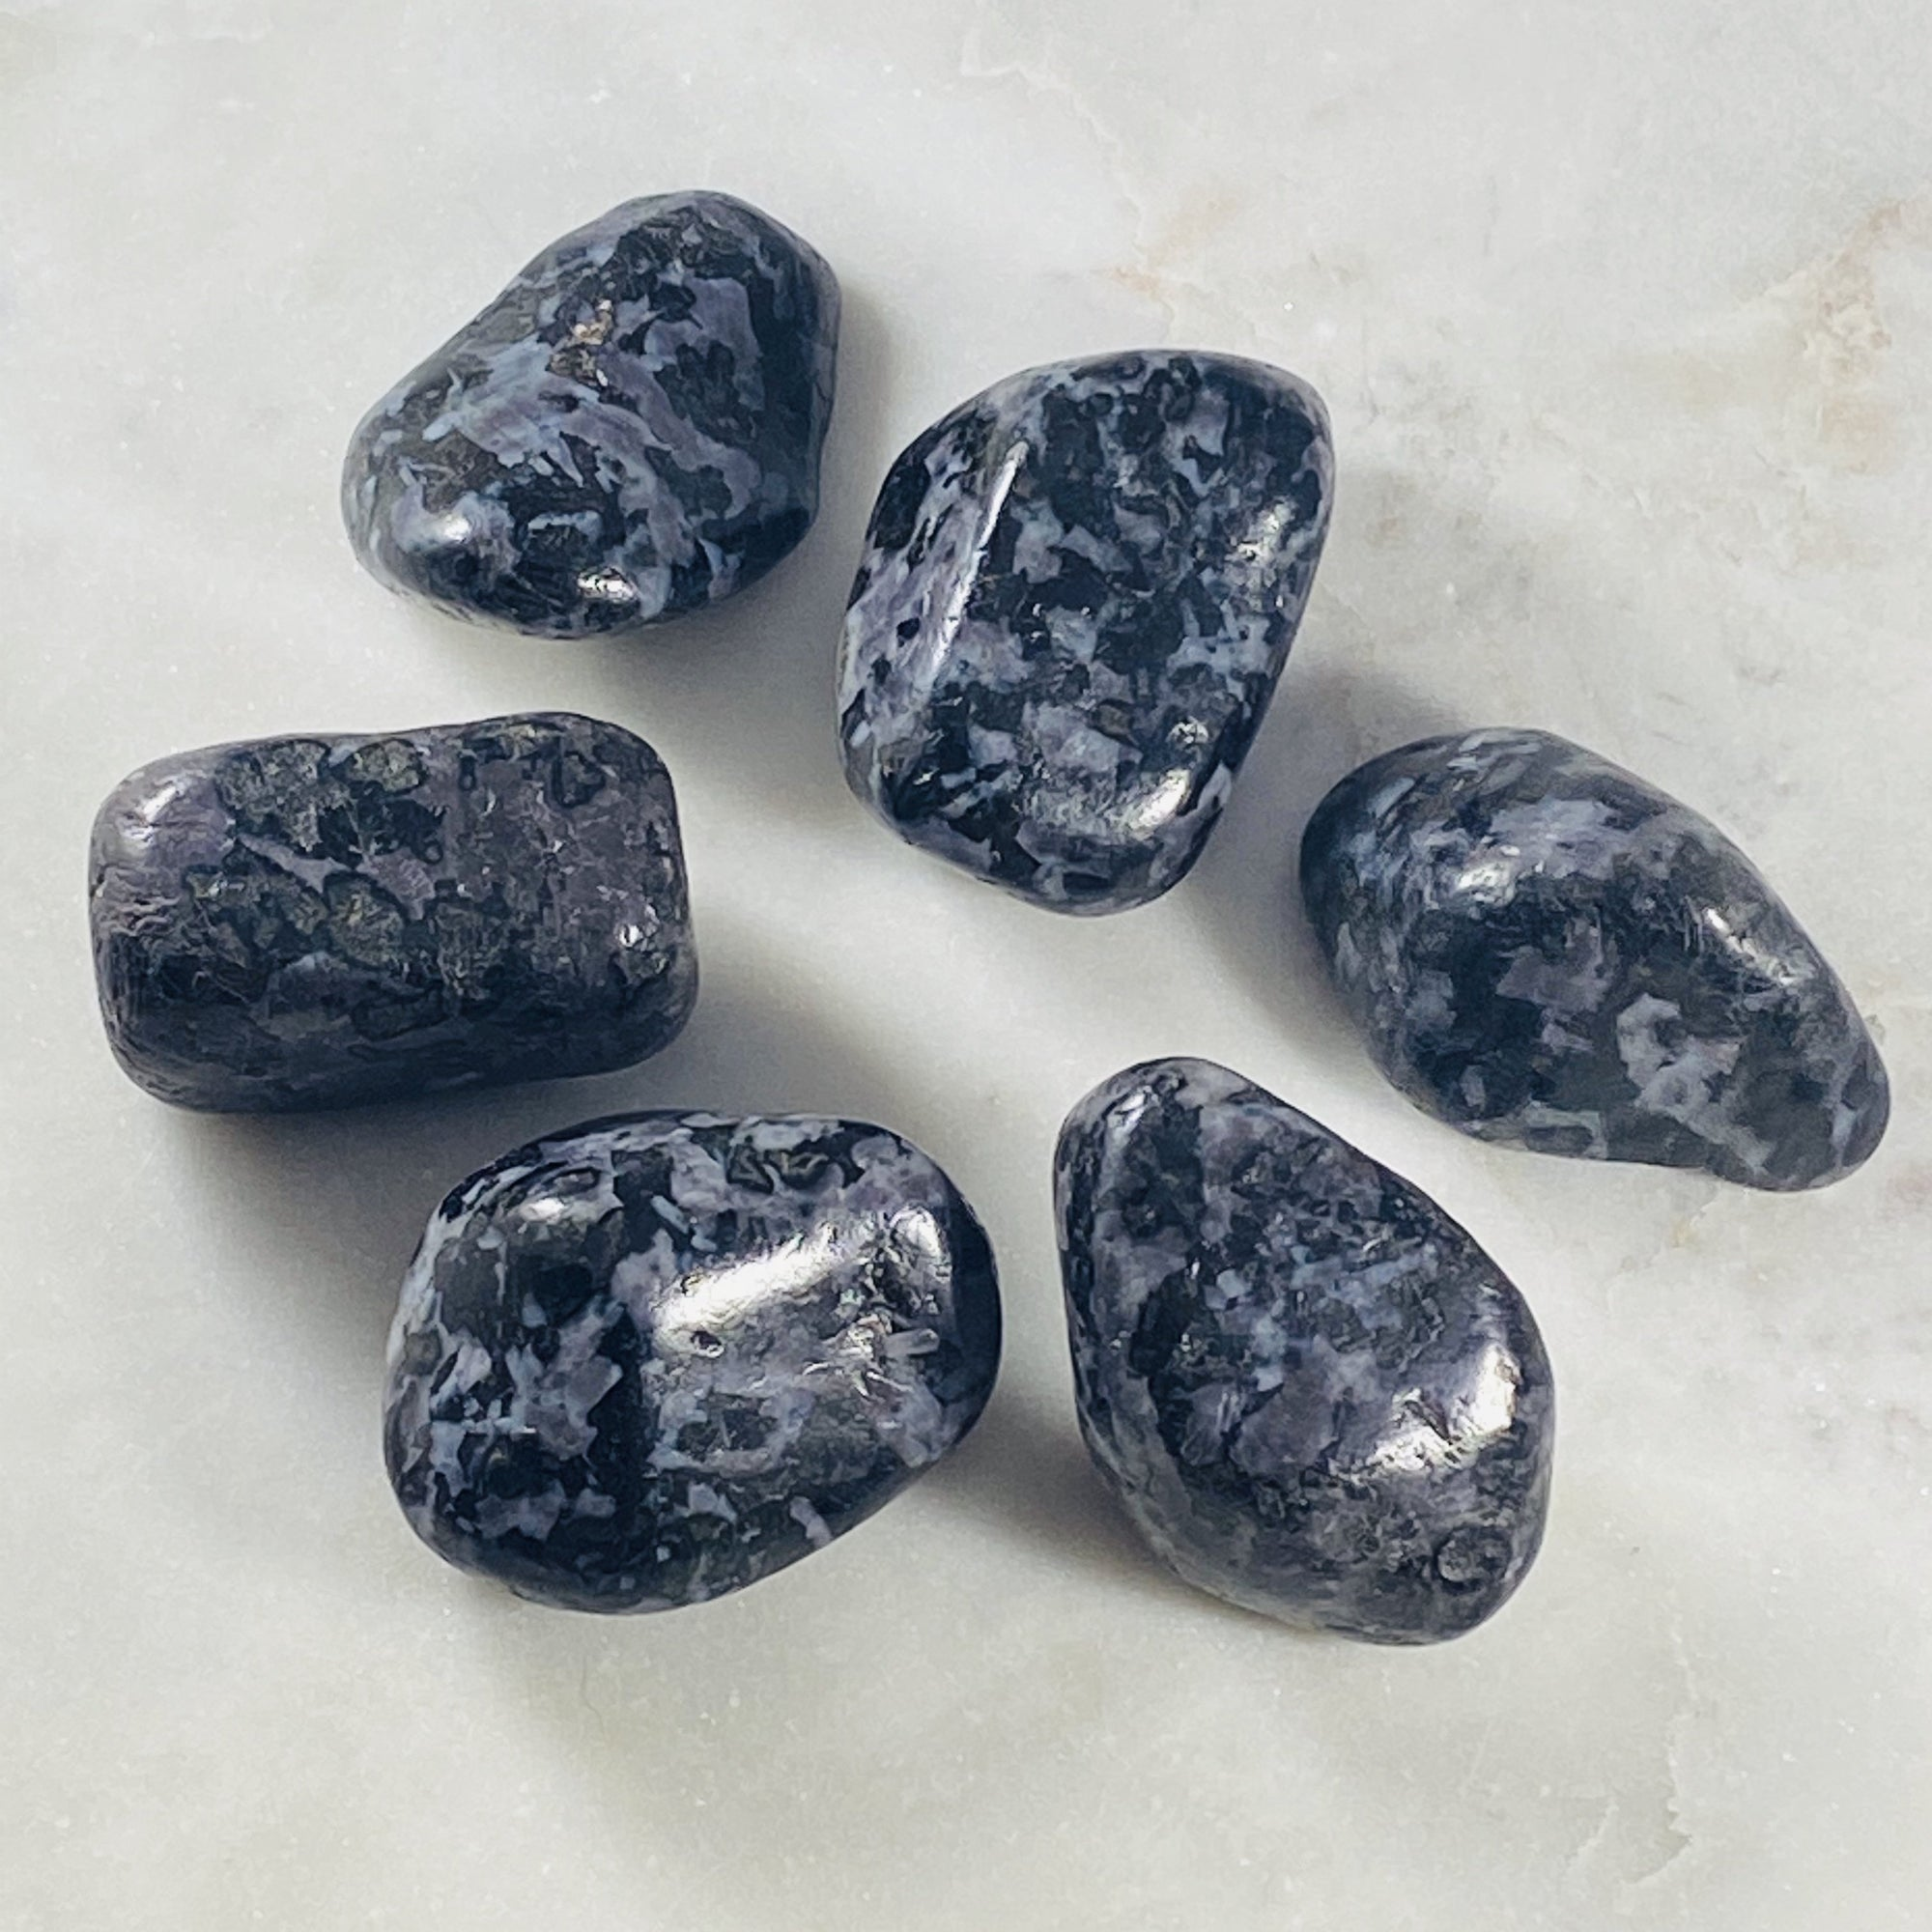 Indigo Gabbro (Mystic Merlinite) Tumbled Large